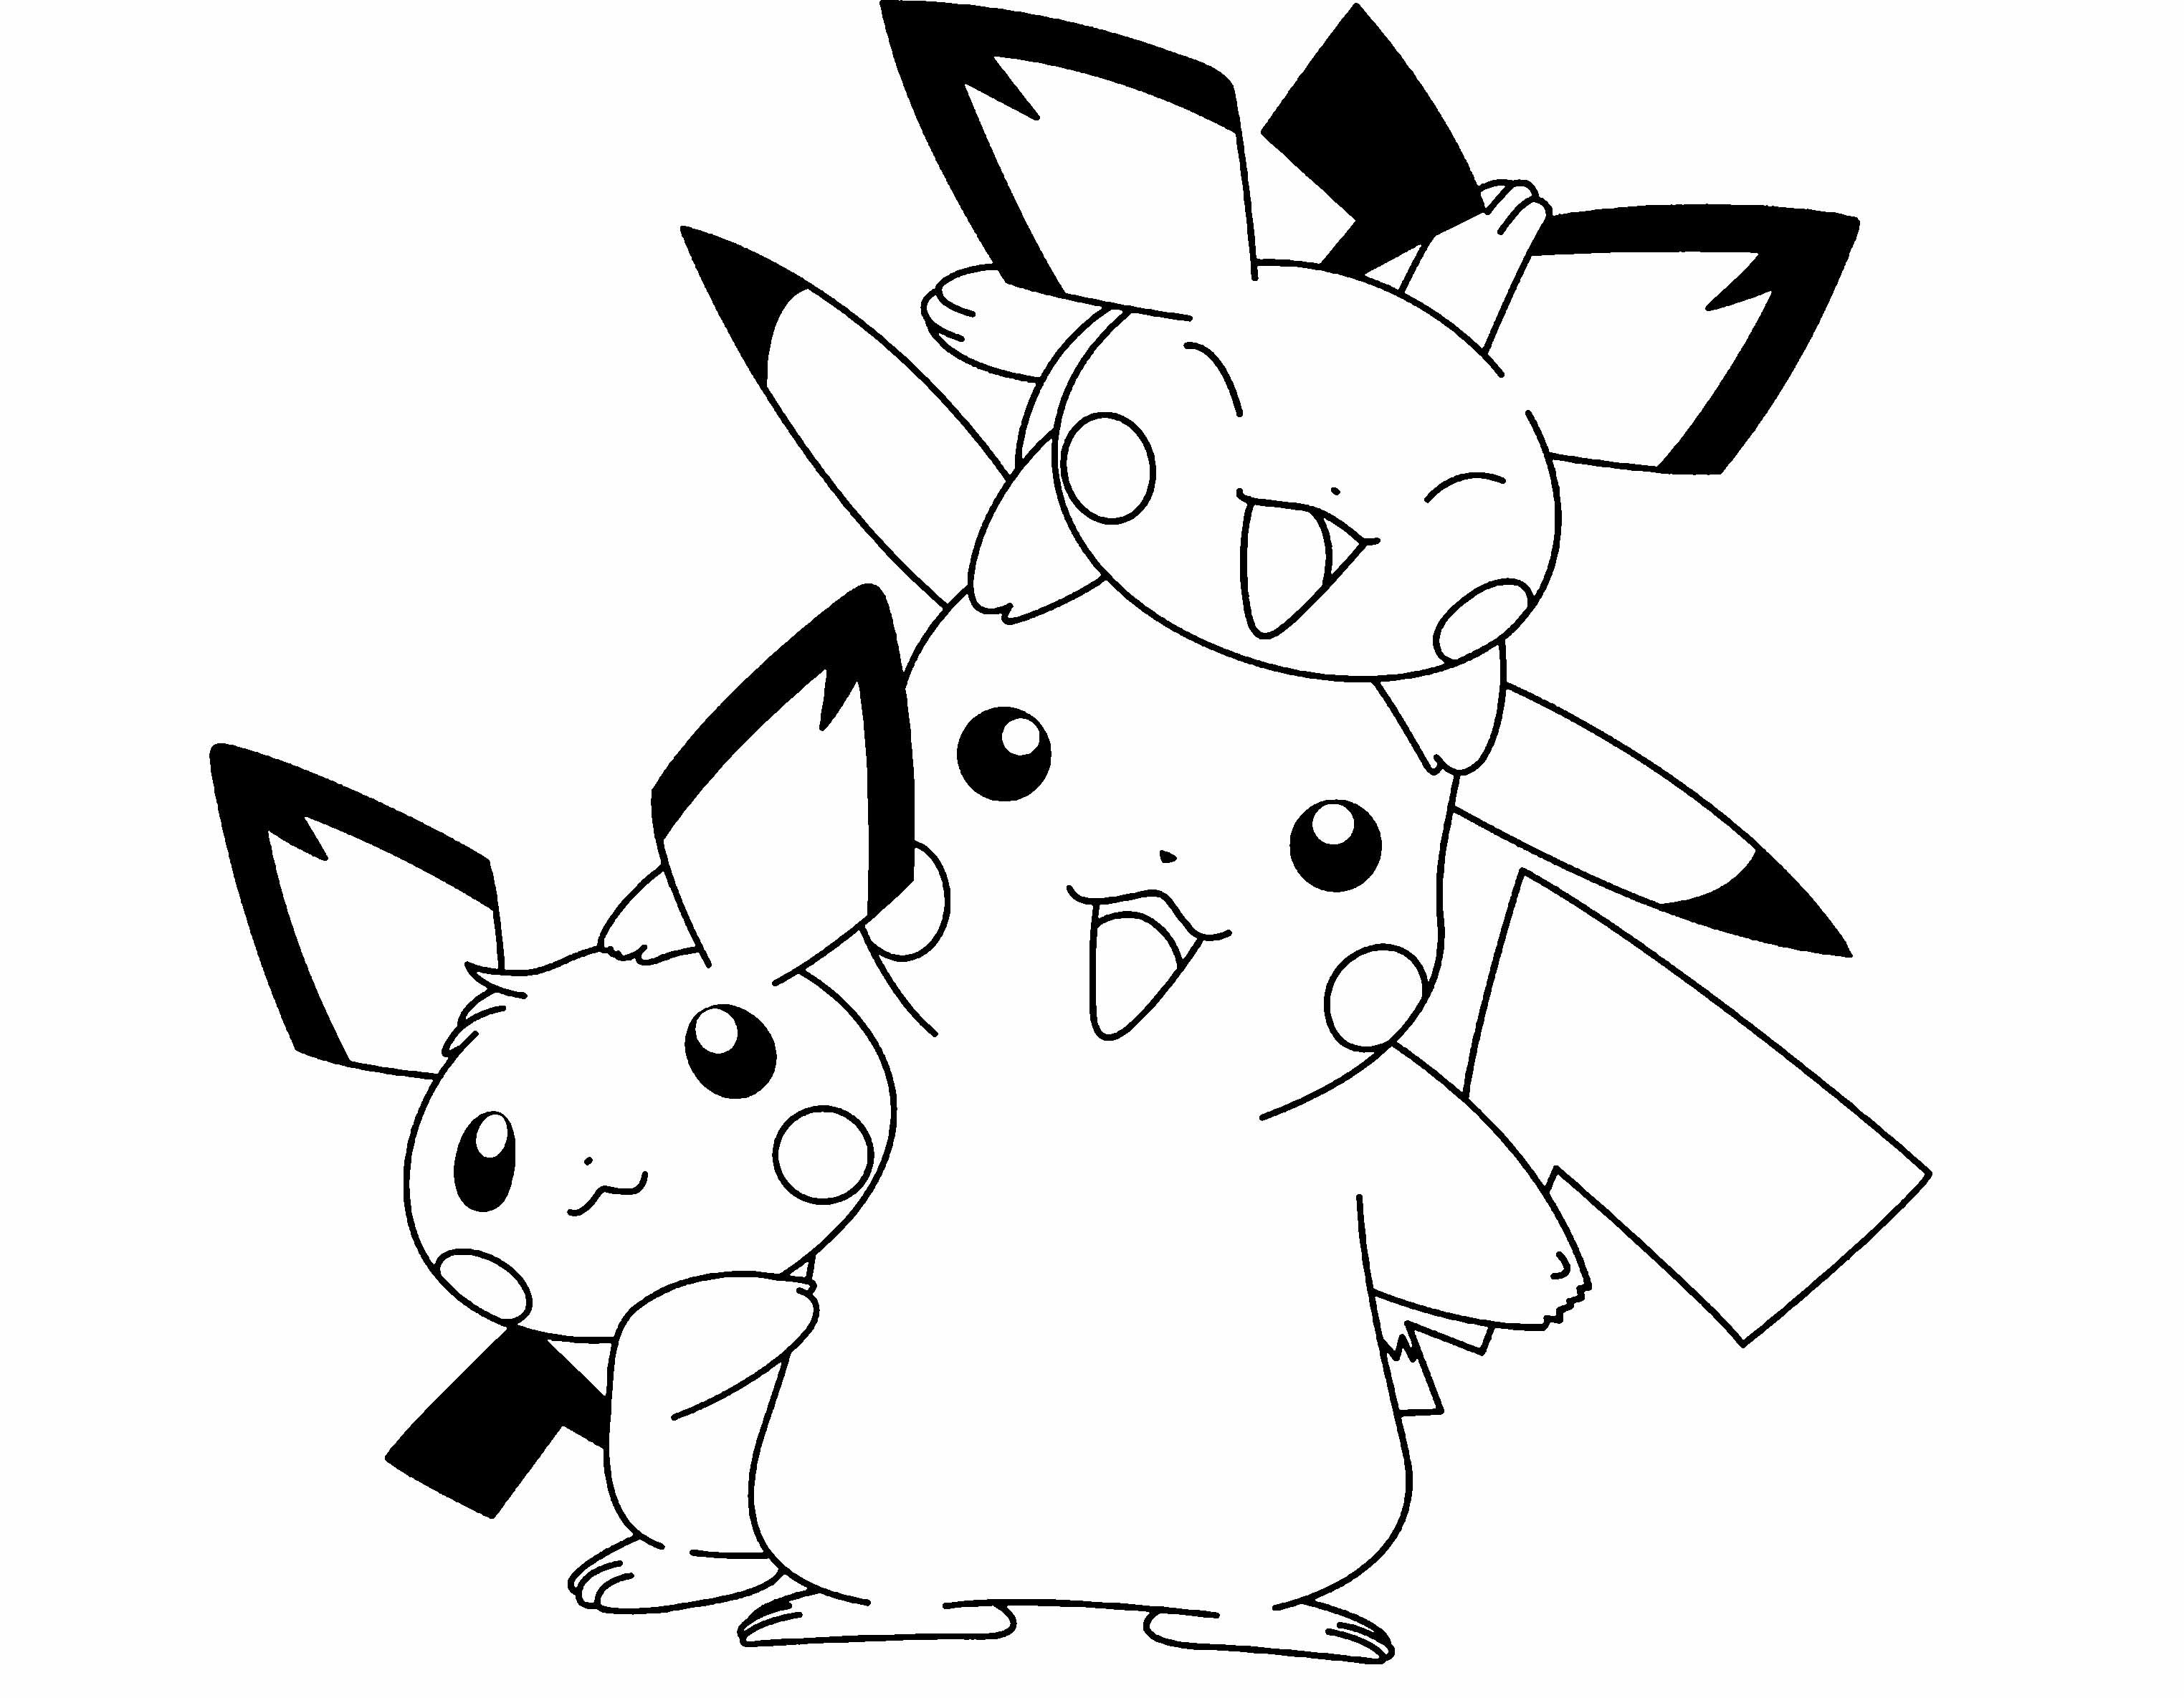 3047x2369 Awesome Pokemon Coloring Pages Pikachu Gallery Printable Bright